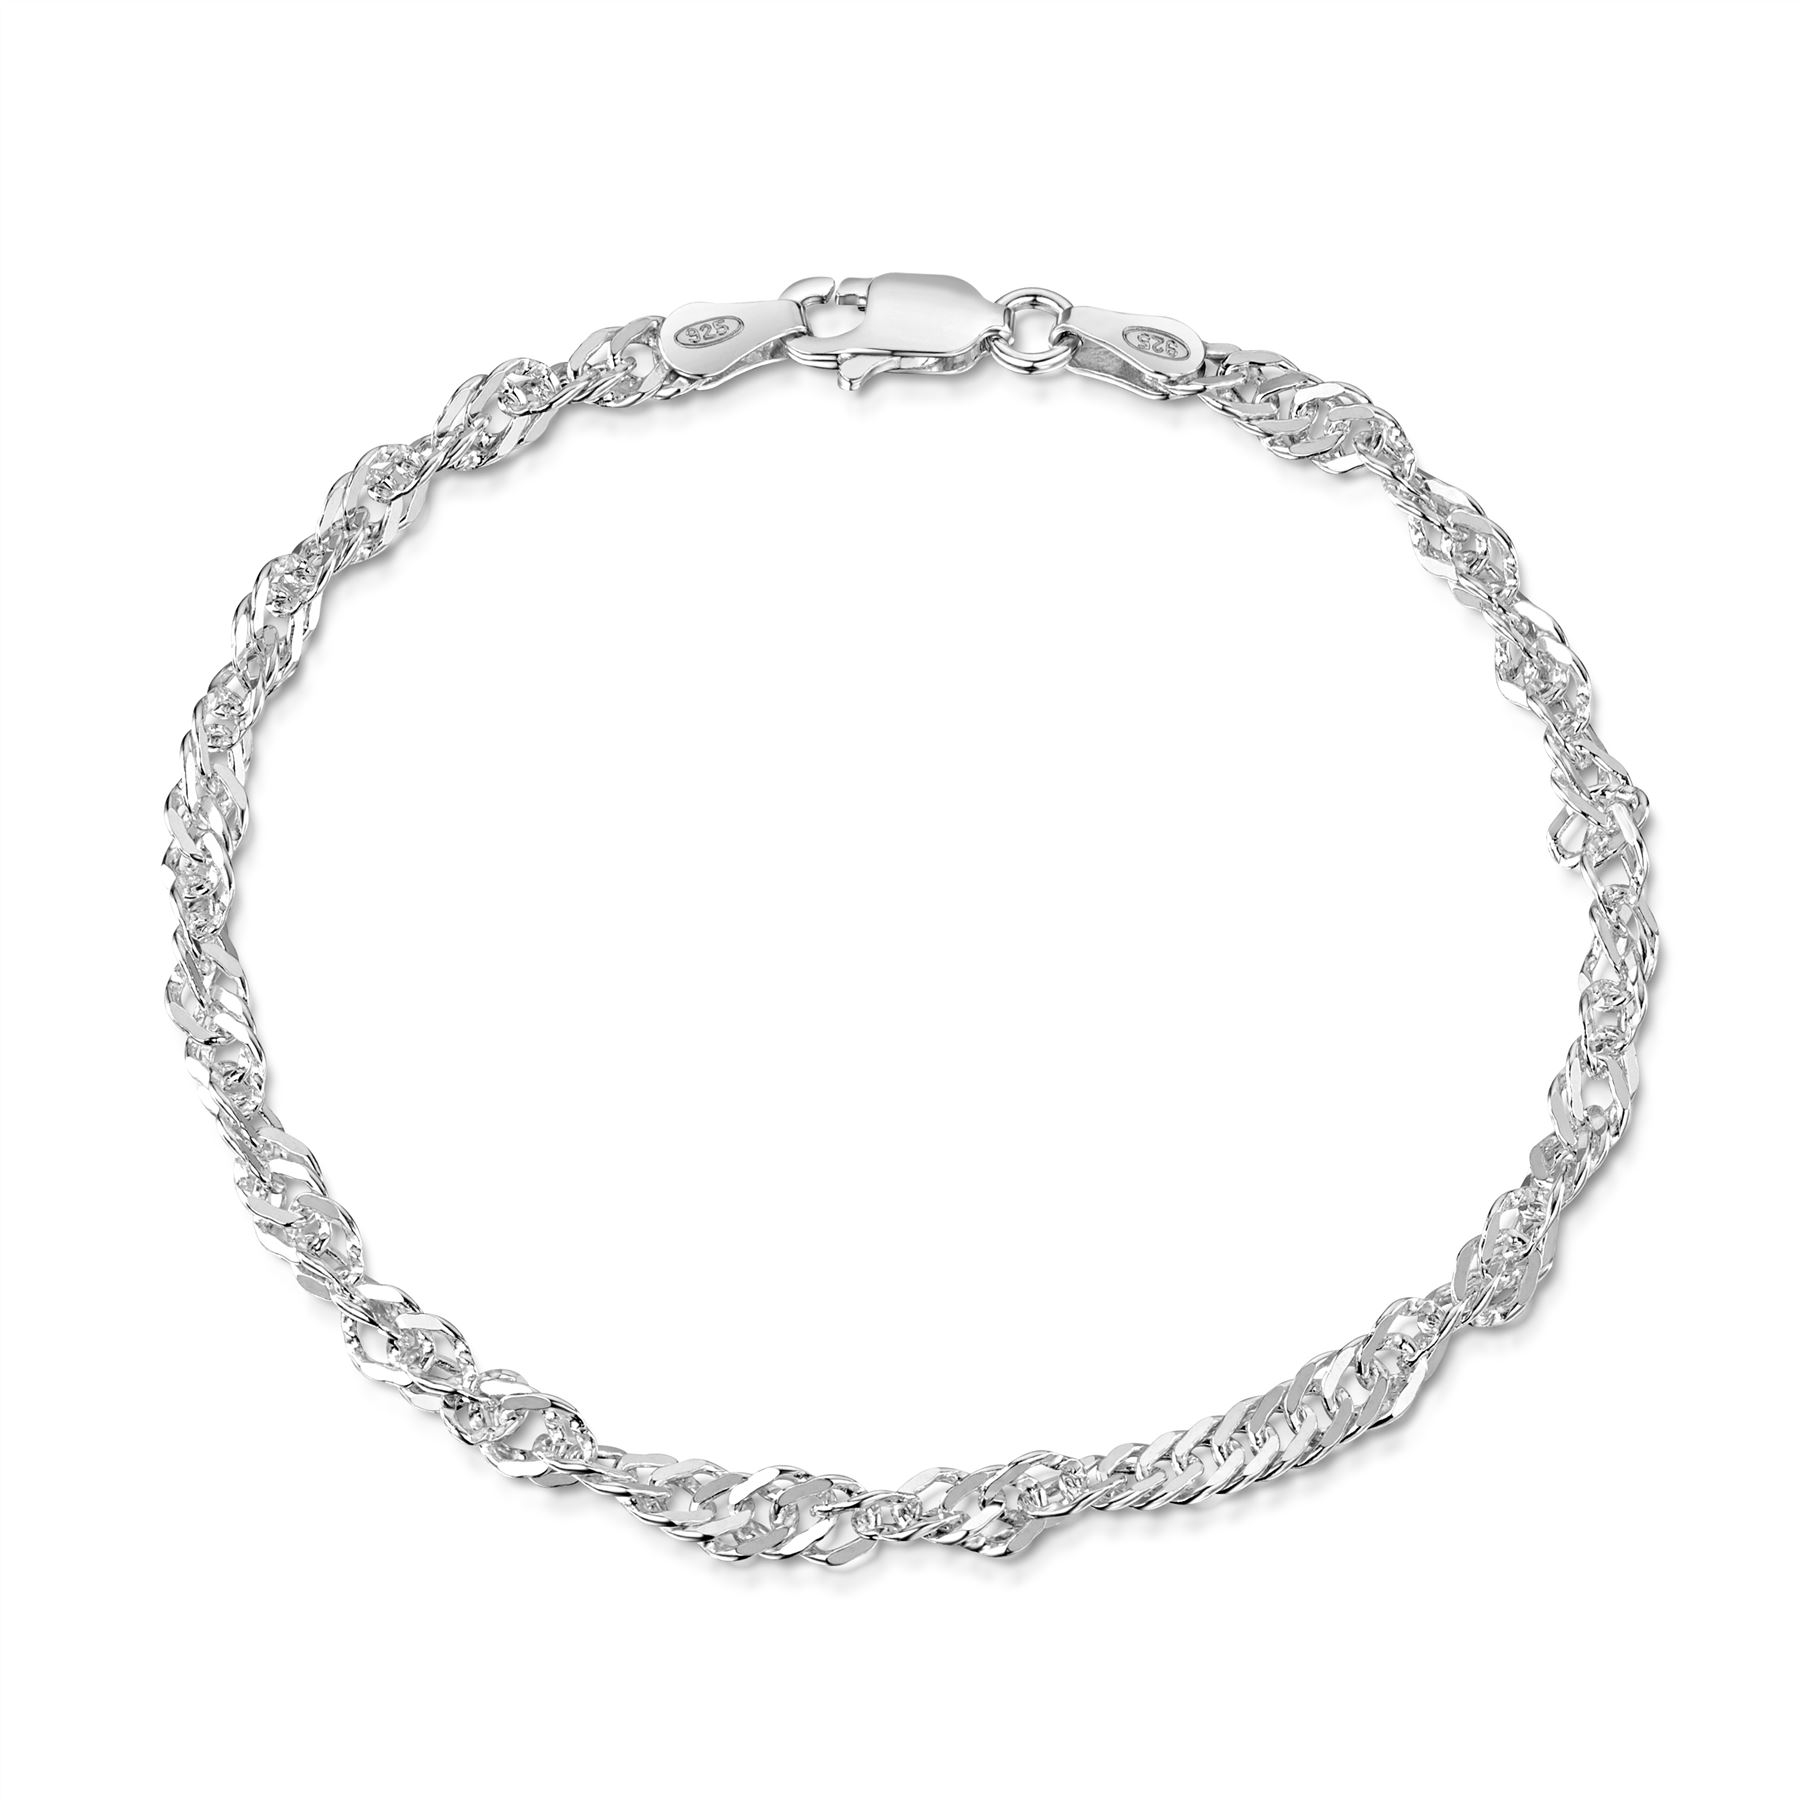 Amberta-Jewelry-Genuine-925-Sterling-Silver-Bracelet-Bangle-Chain-Made-in-Italy thumbnail 87